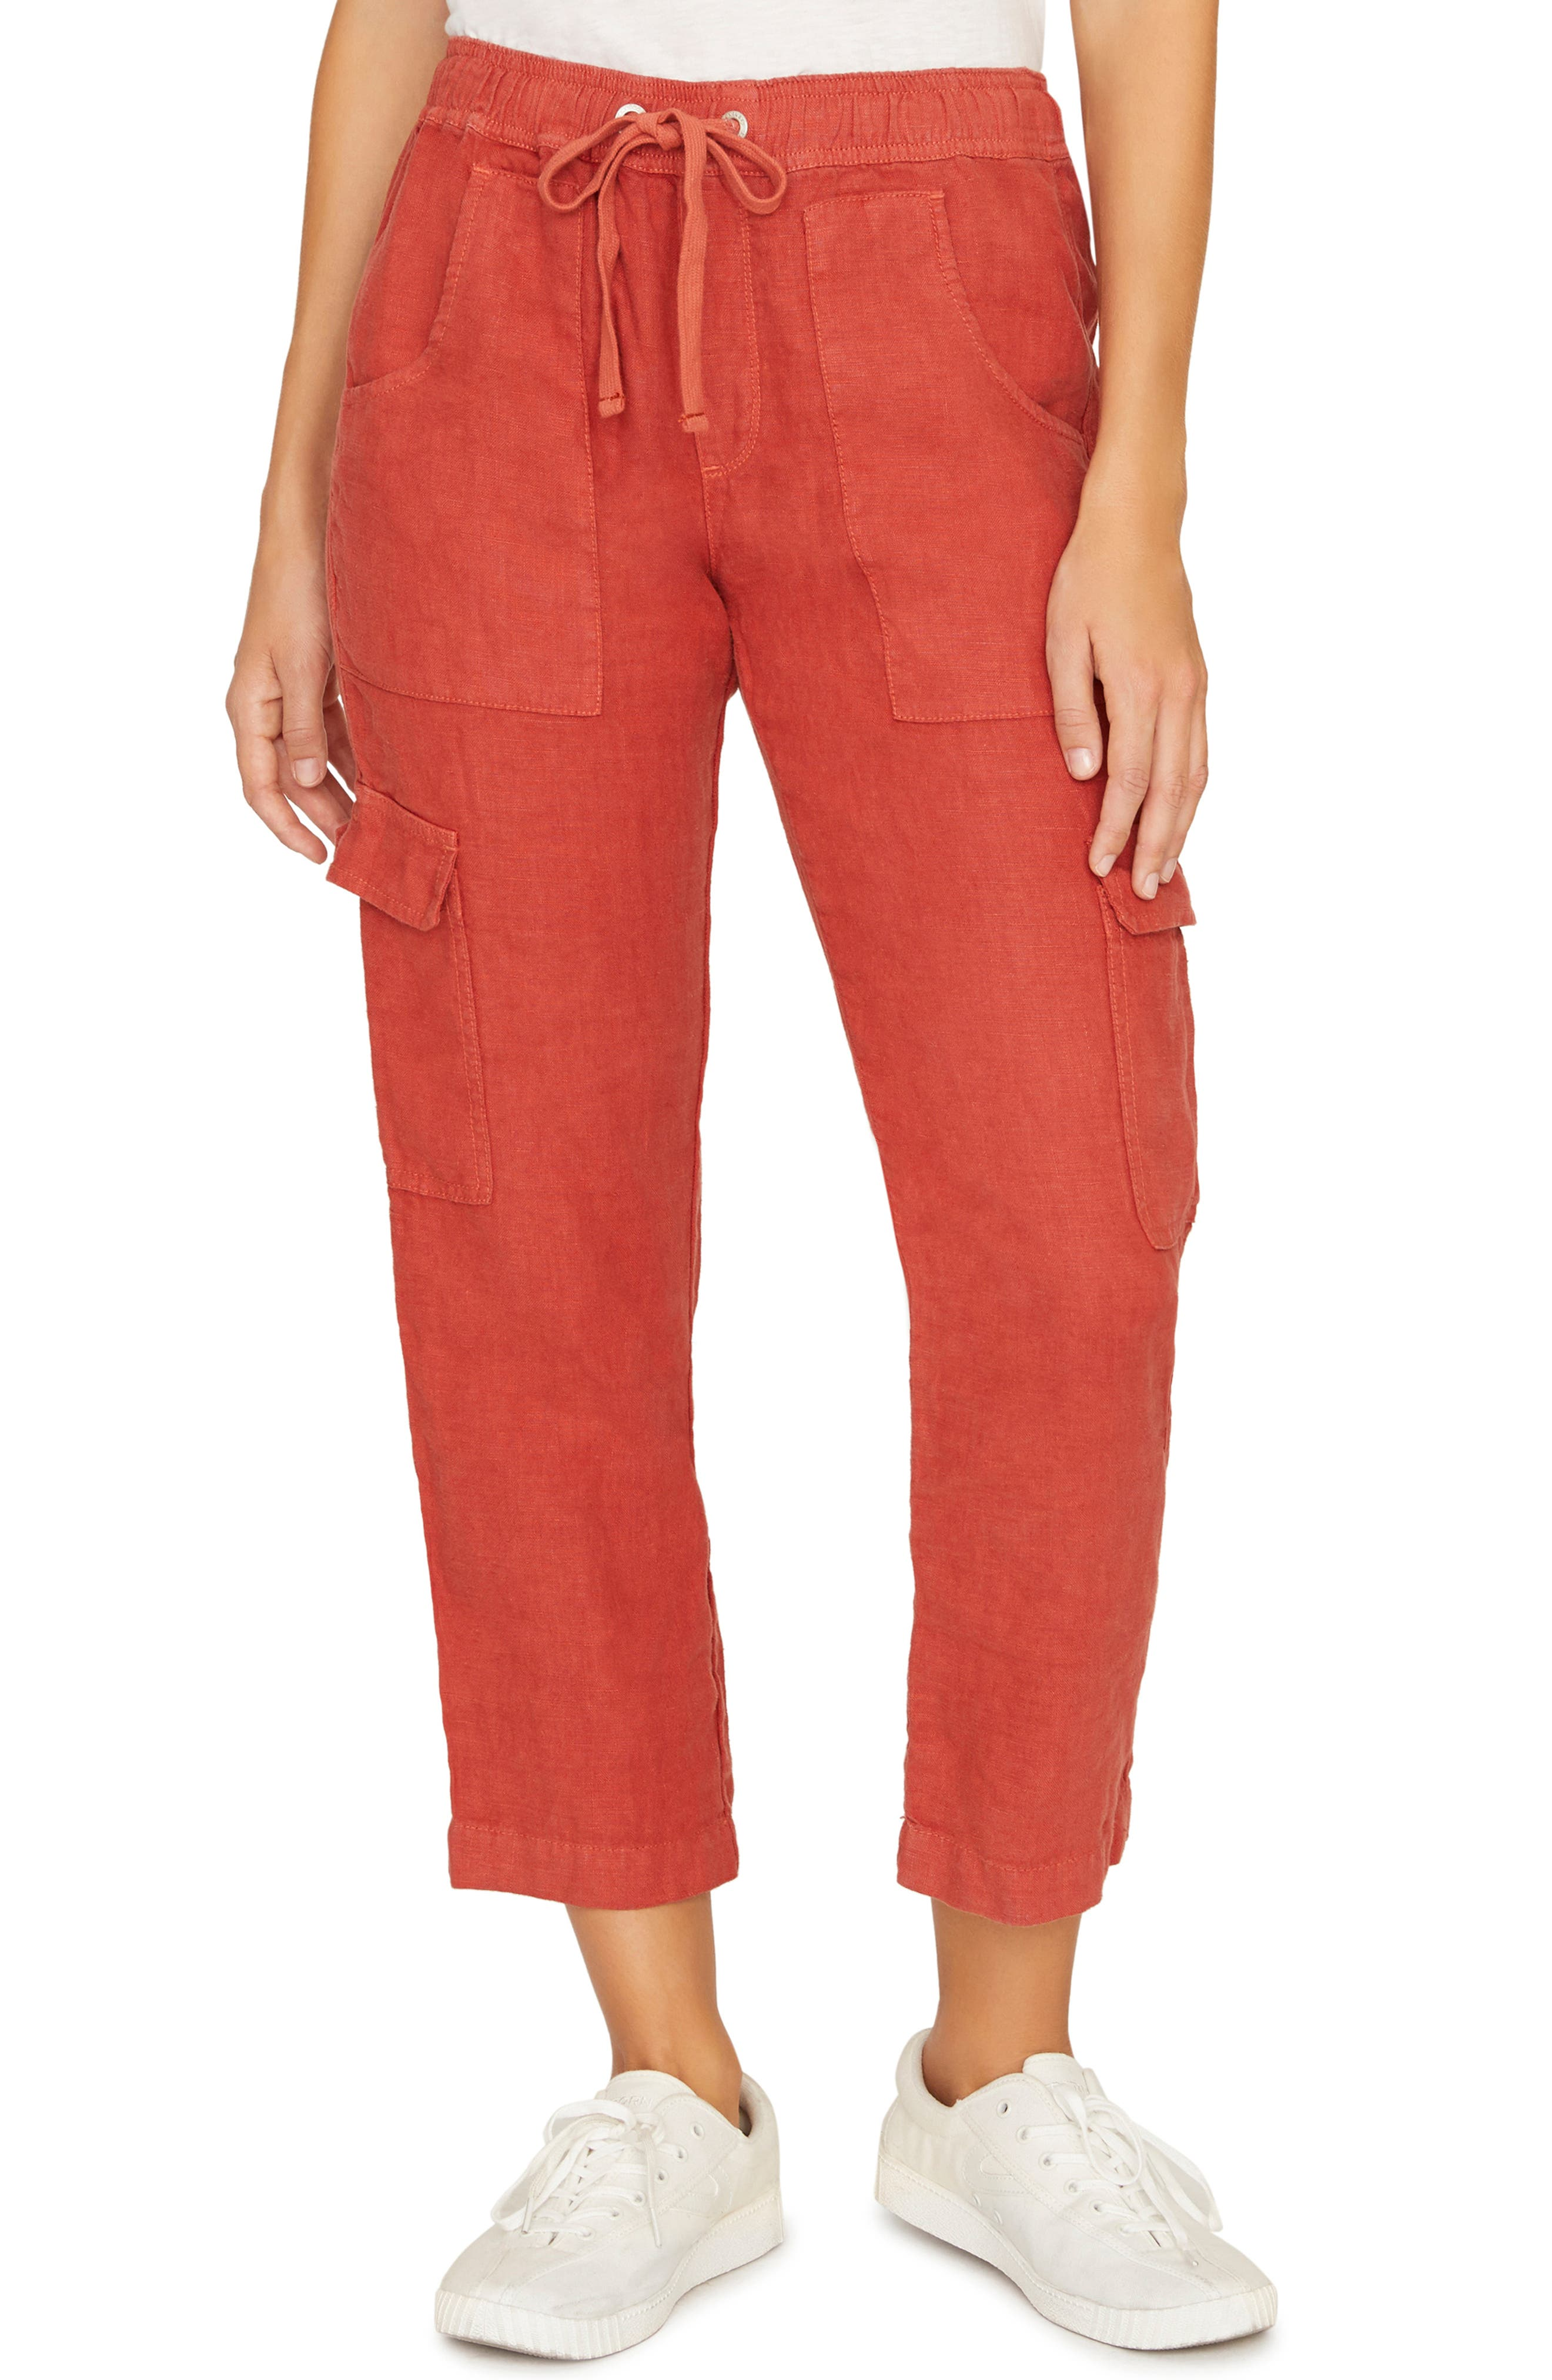 Sanctuary Discoverer Pull-On Cargo Pants, Coral